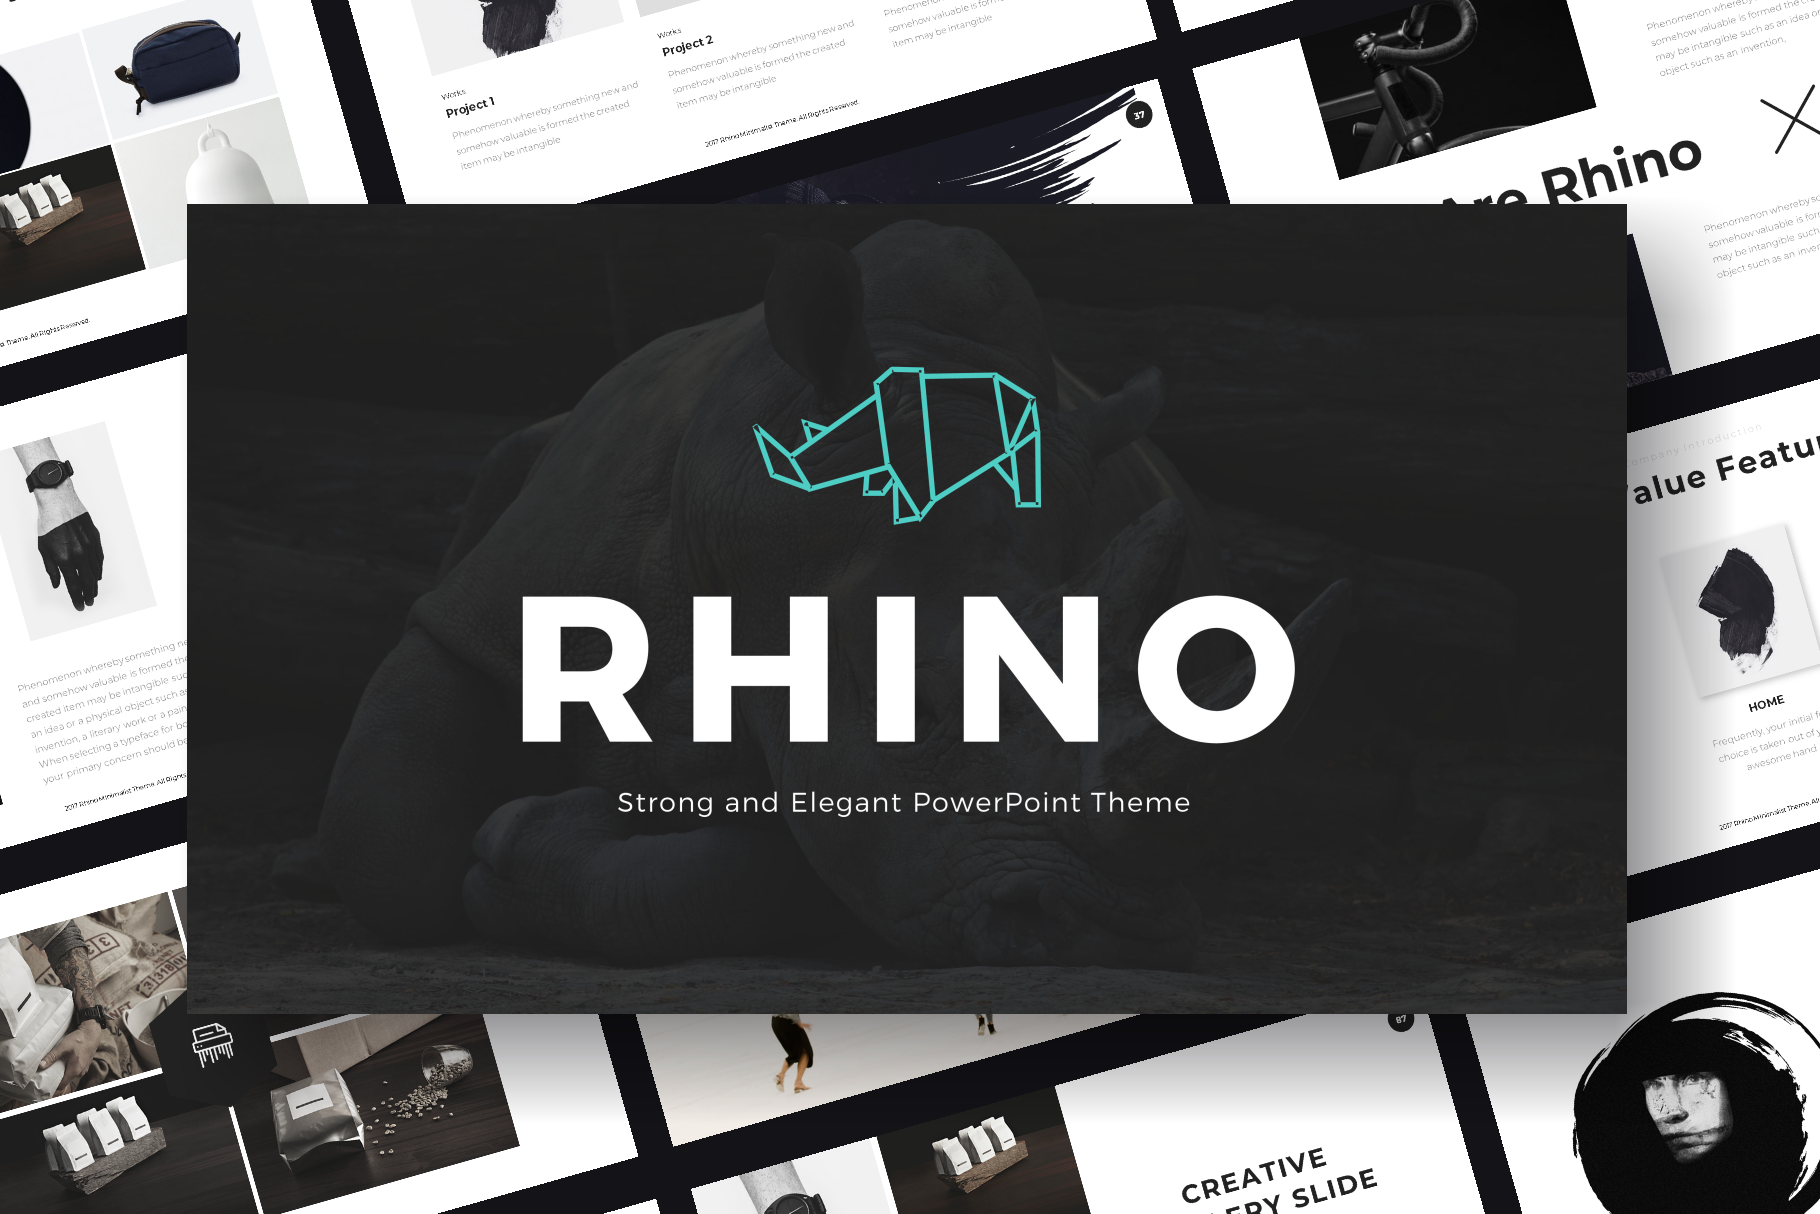 Rhino PowerPoint Template example image 1